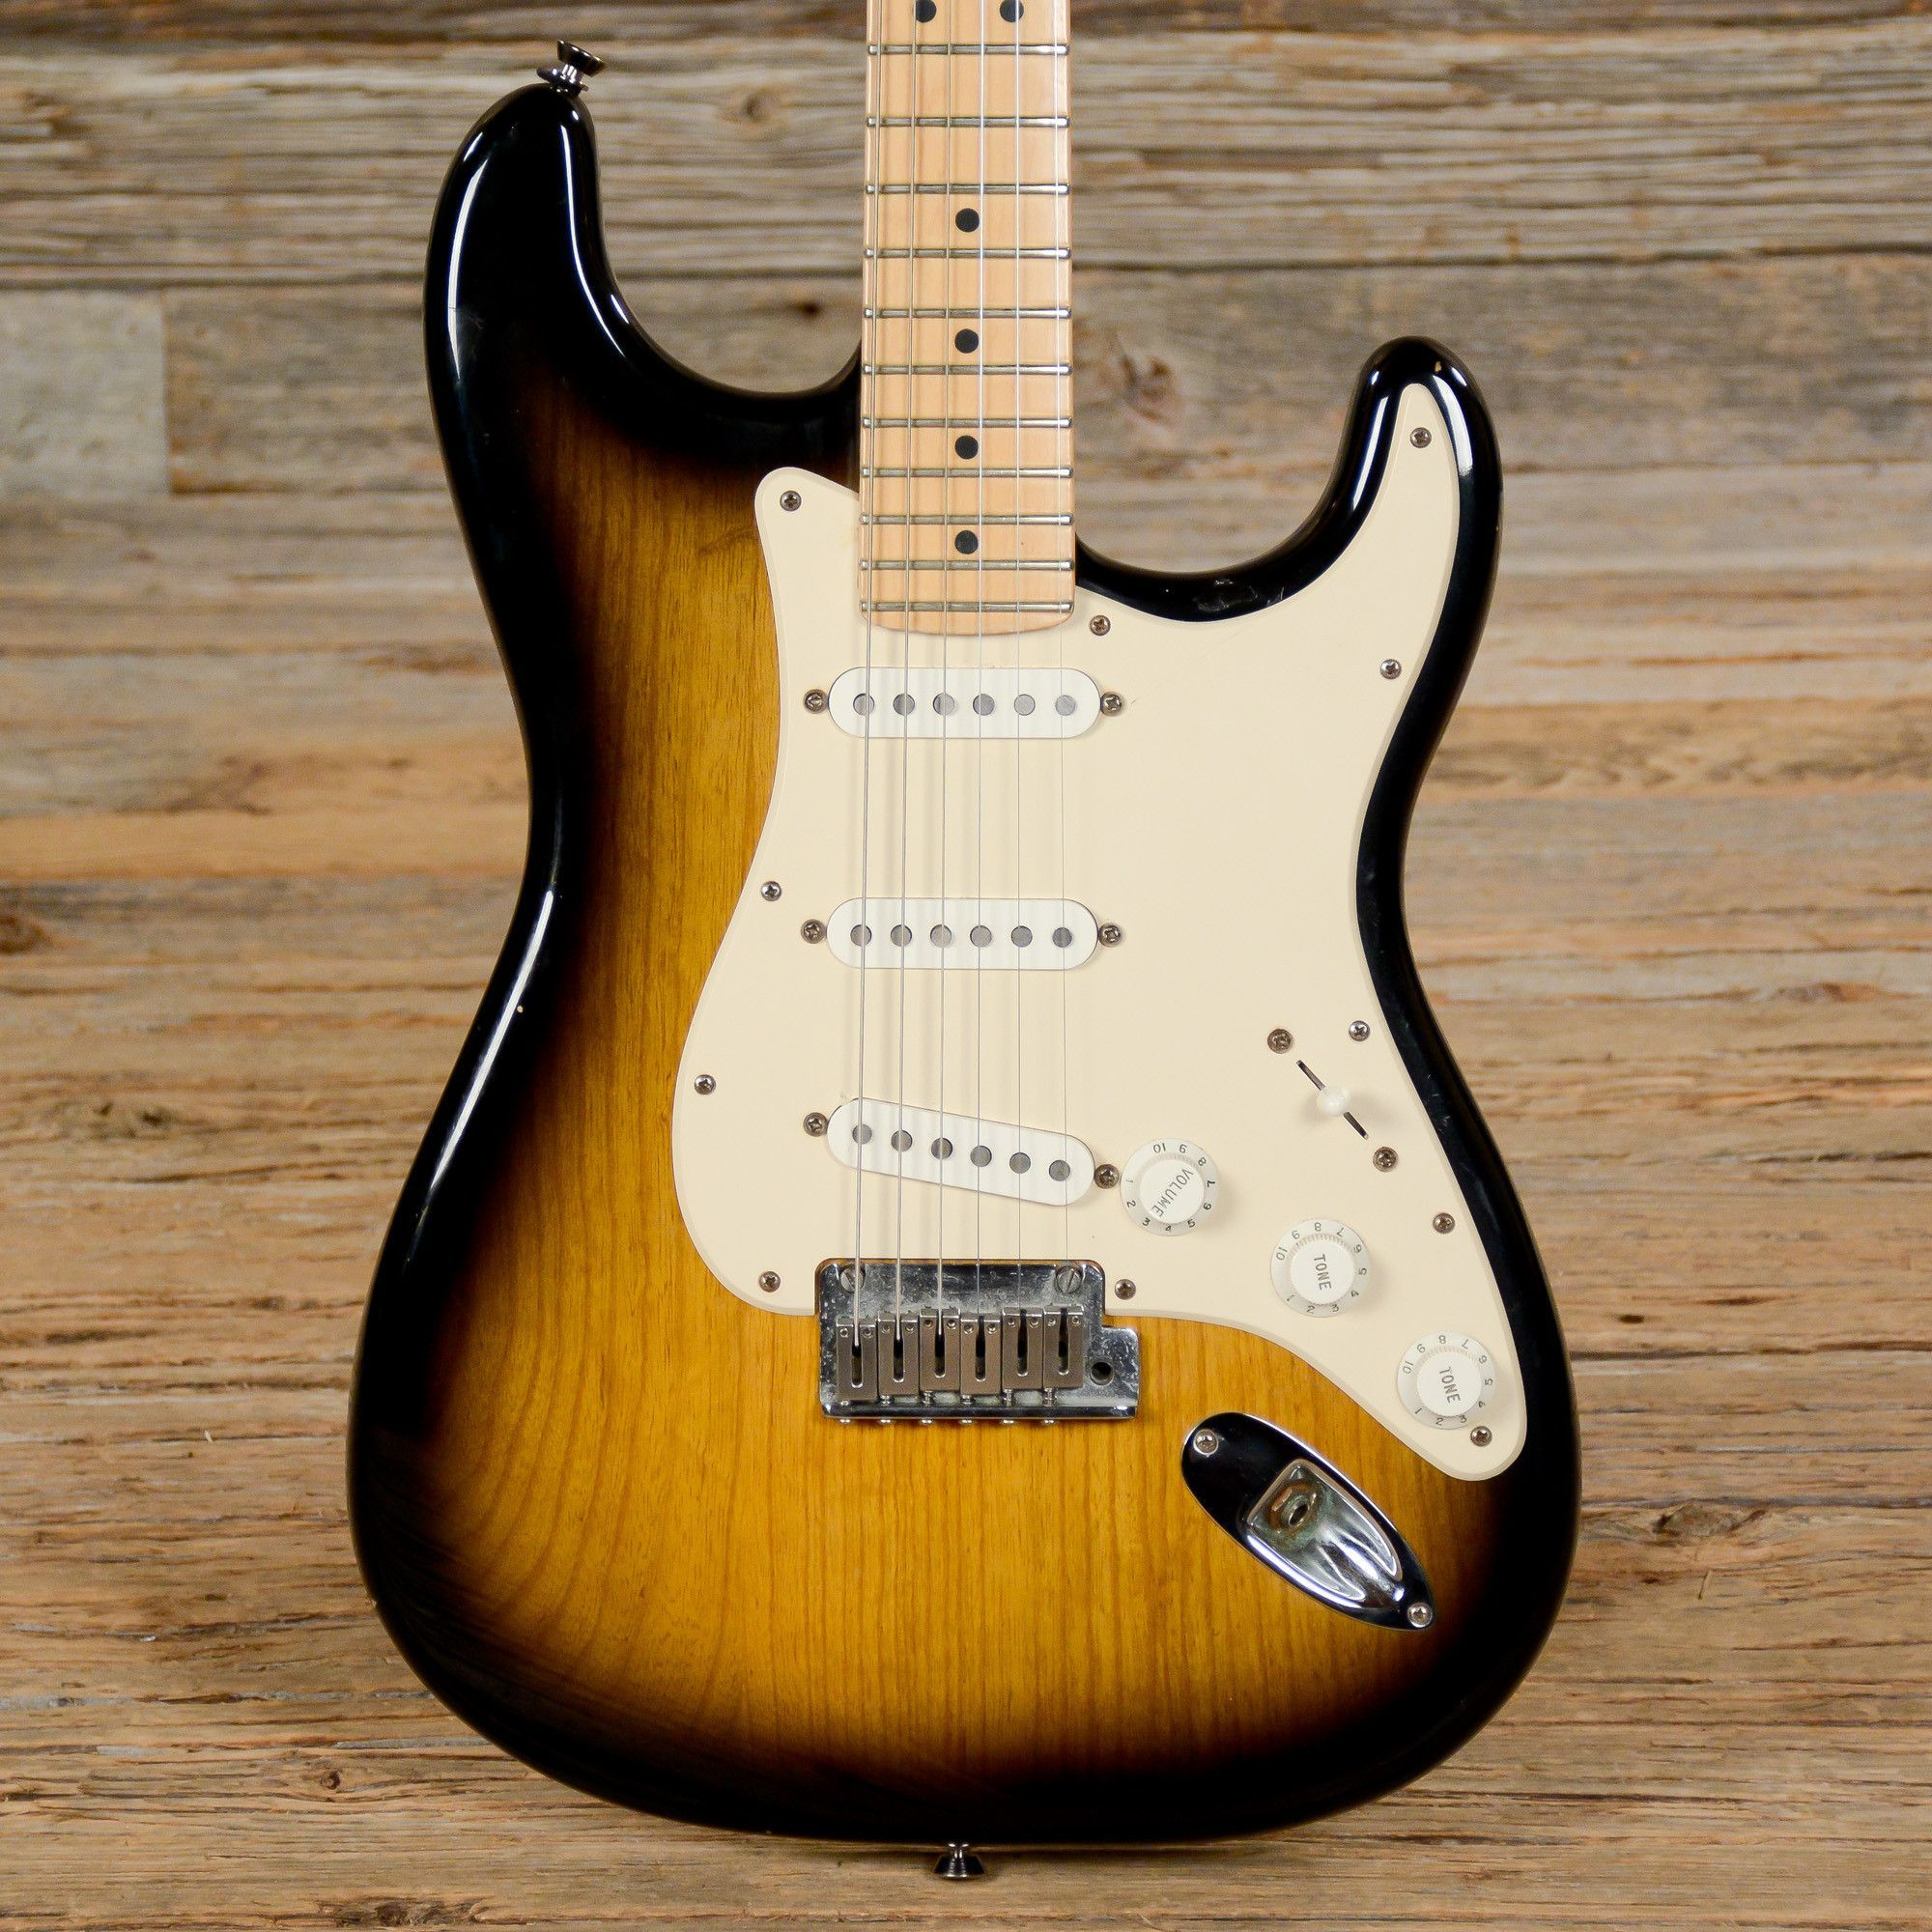 fender american standard stratocaster 50th anniversary sunburst used s363 stratocasters. Black Bedroom Furniture Sets. Home Design Ideas